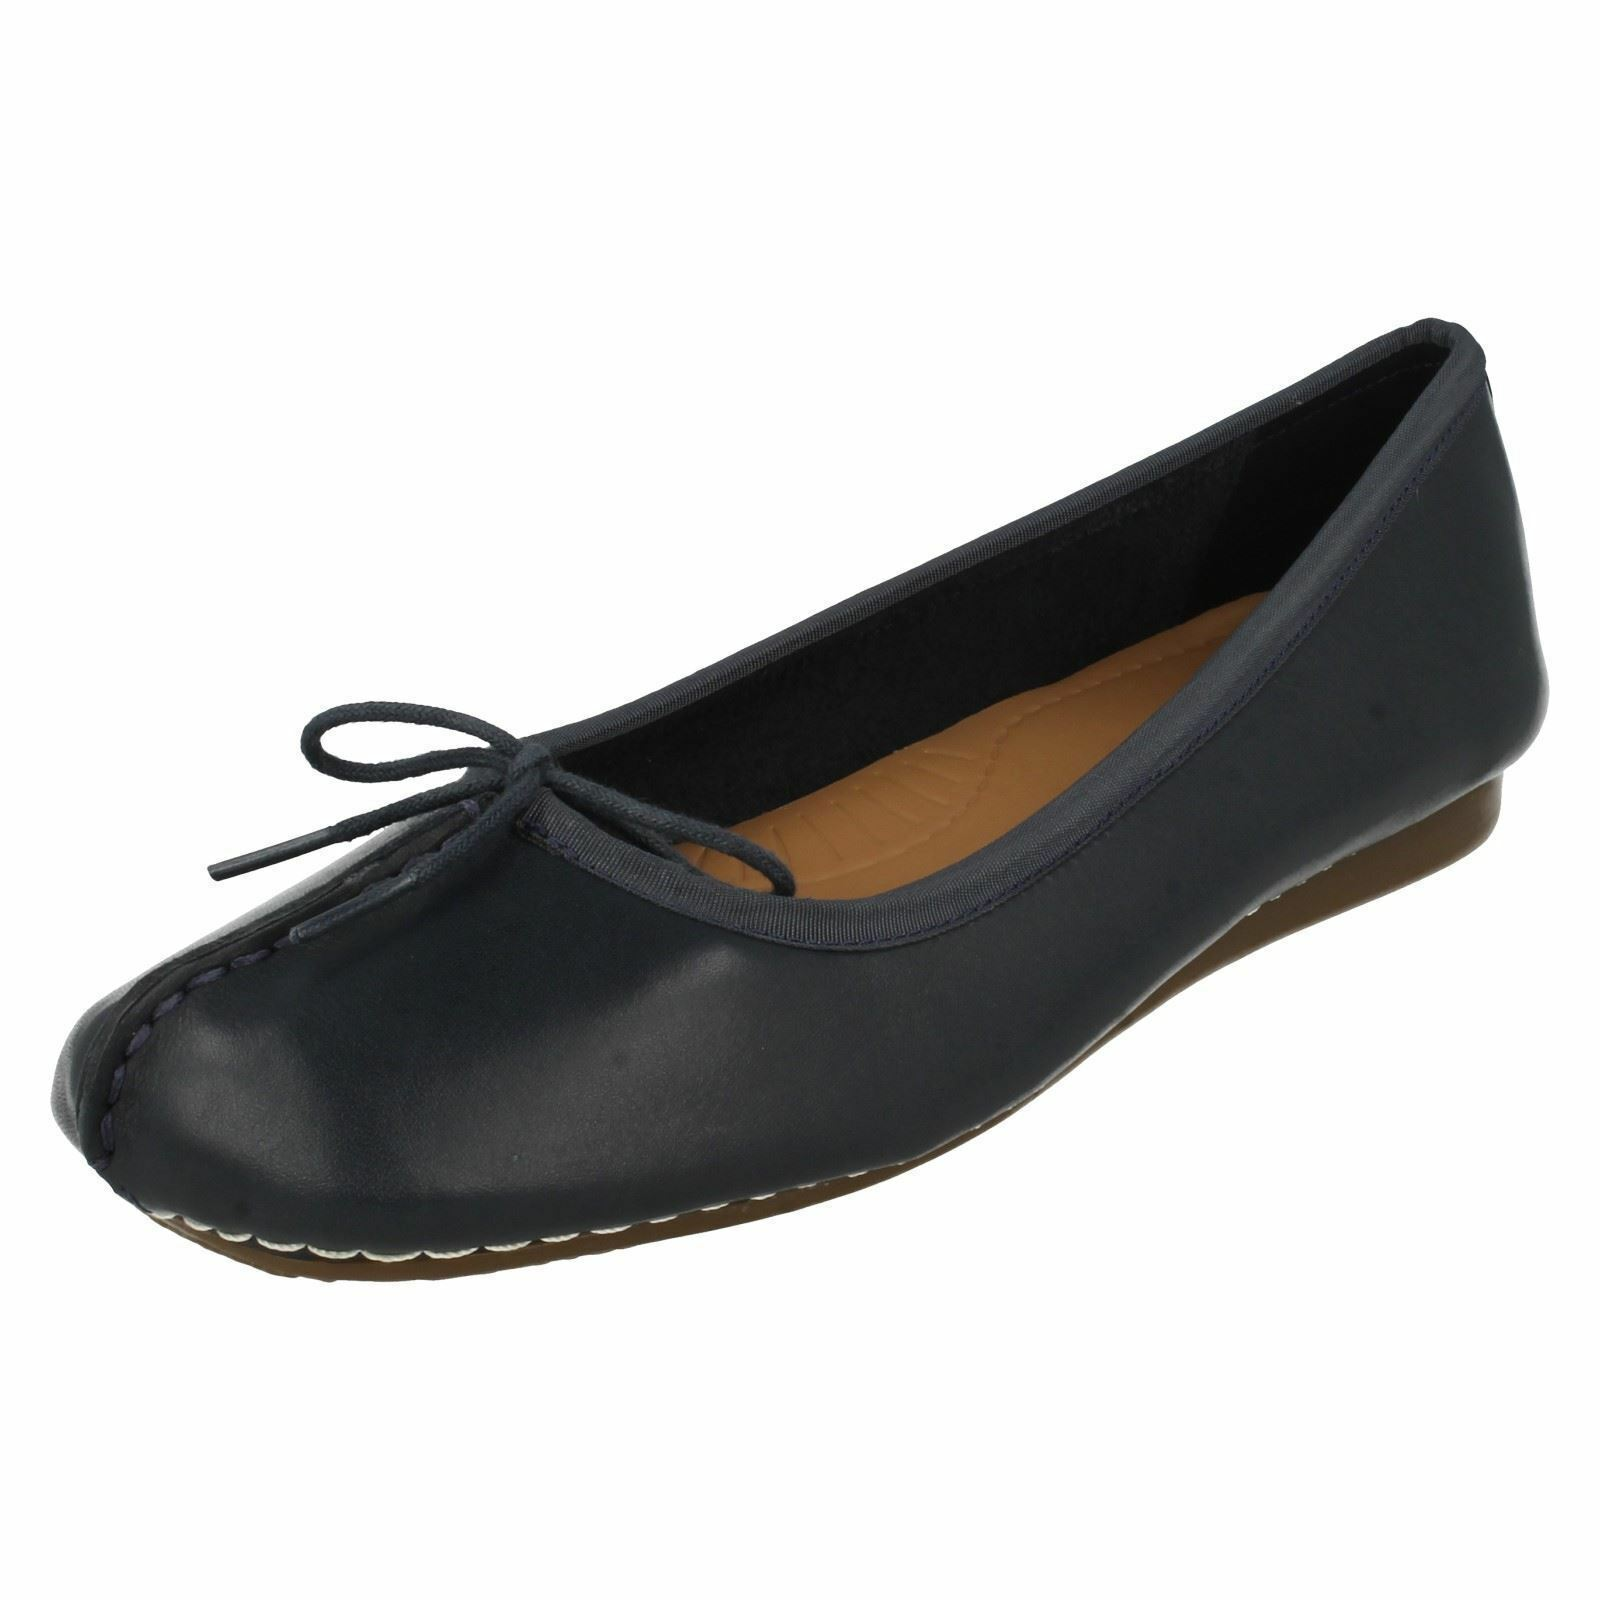 LADIES LEATHER BALLERINA Schuhe BY CLARKS FRECKLE ICE SALE SALE SALE NOW 309ef0